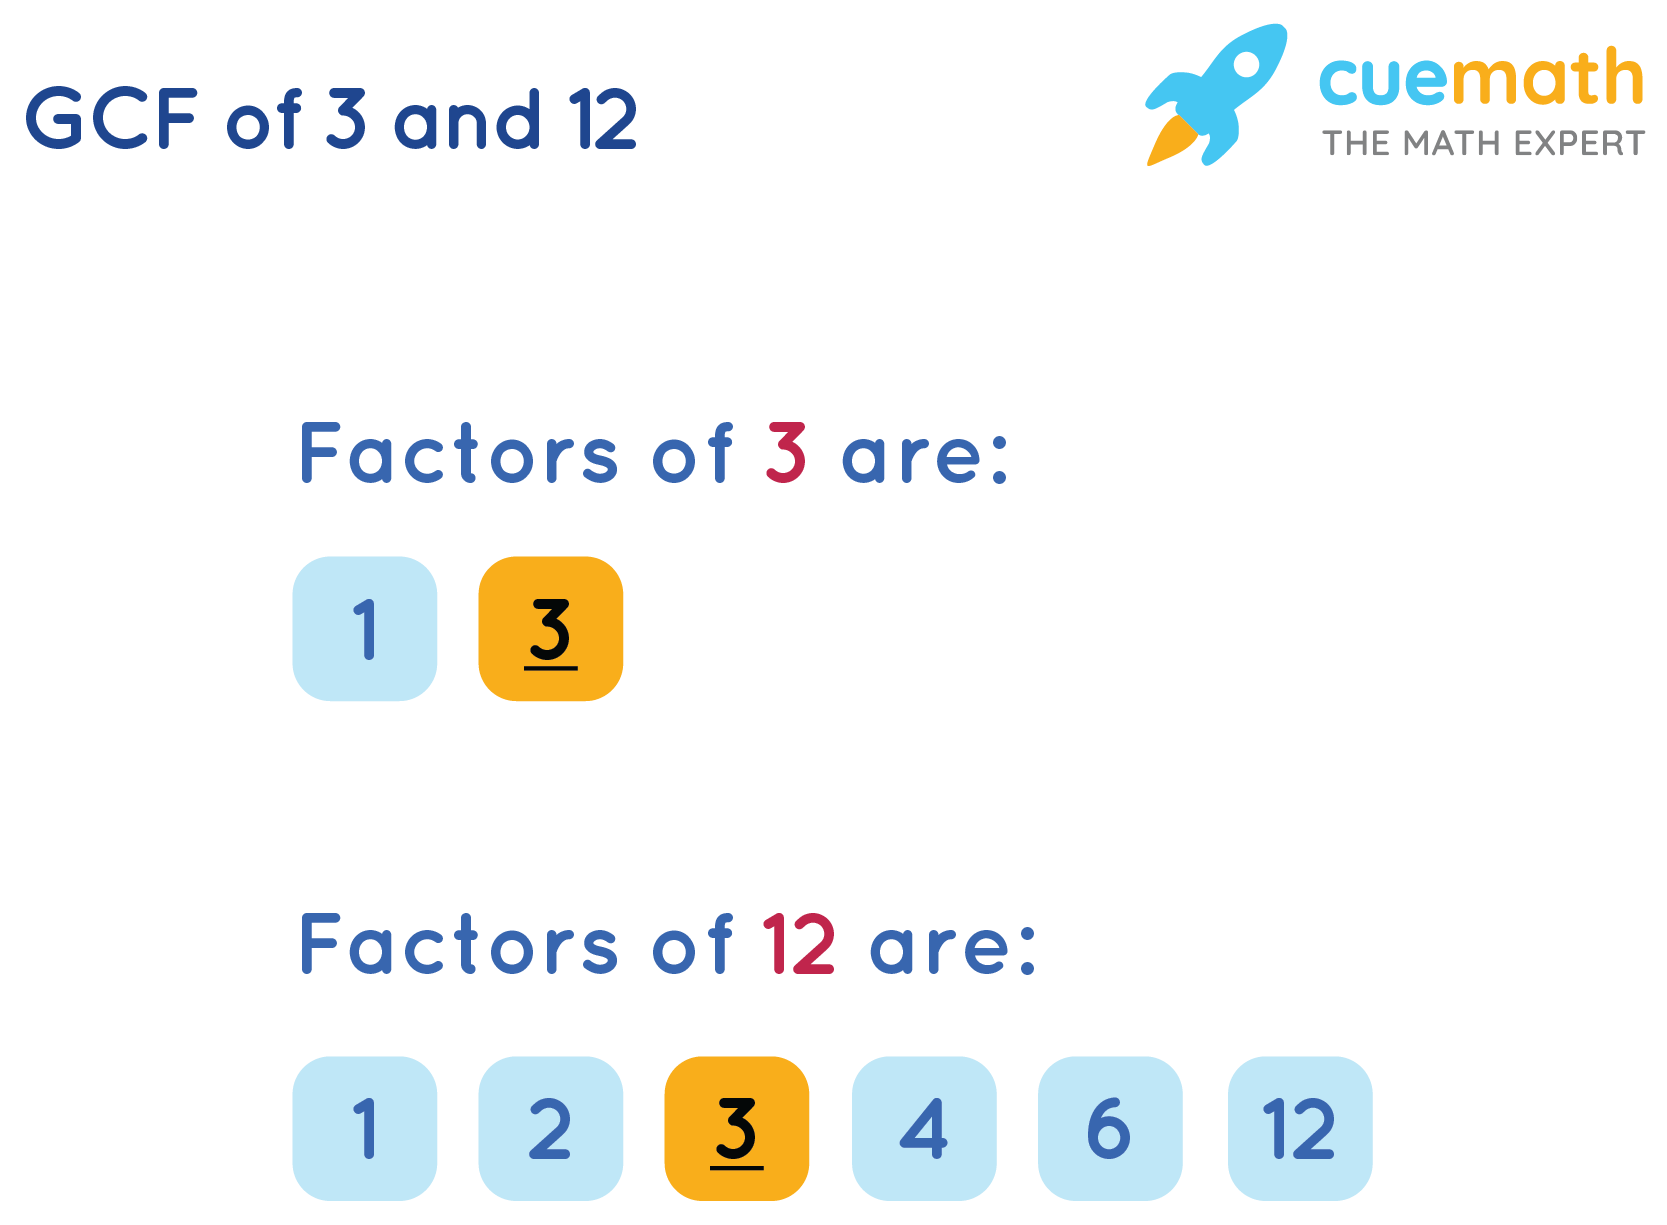 GCF of 3 and 12 by Listing the Common Factors